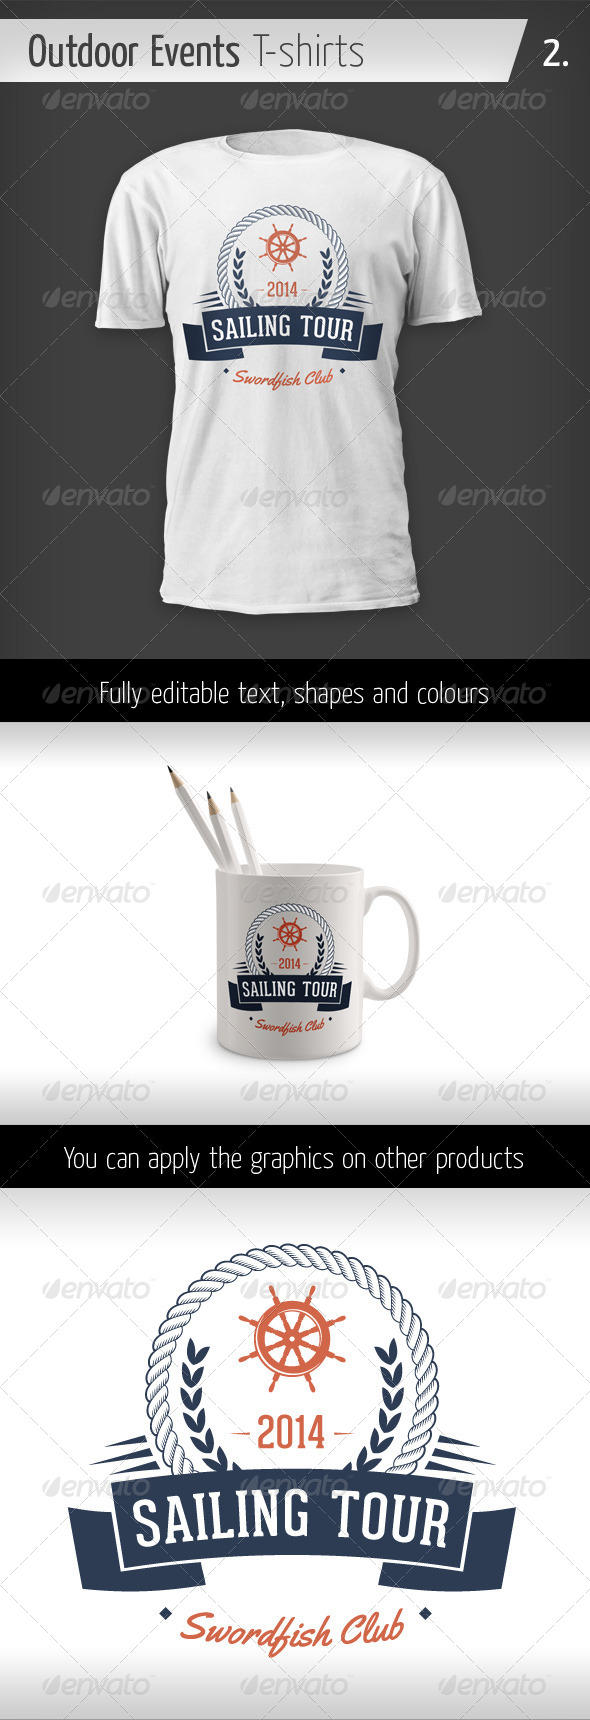 GraphicRiver Outdoor Events T-shirts Sailing Tour 6436151